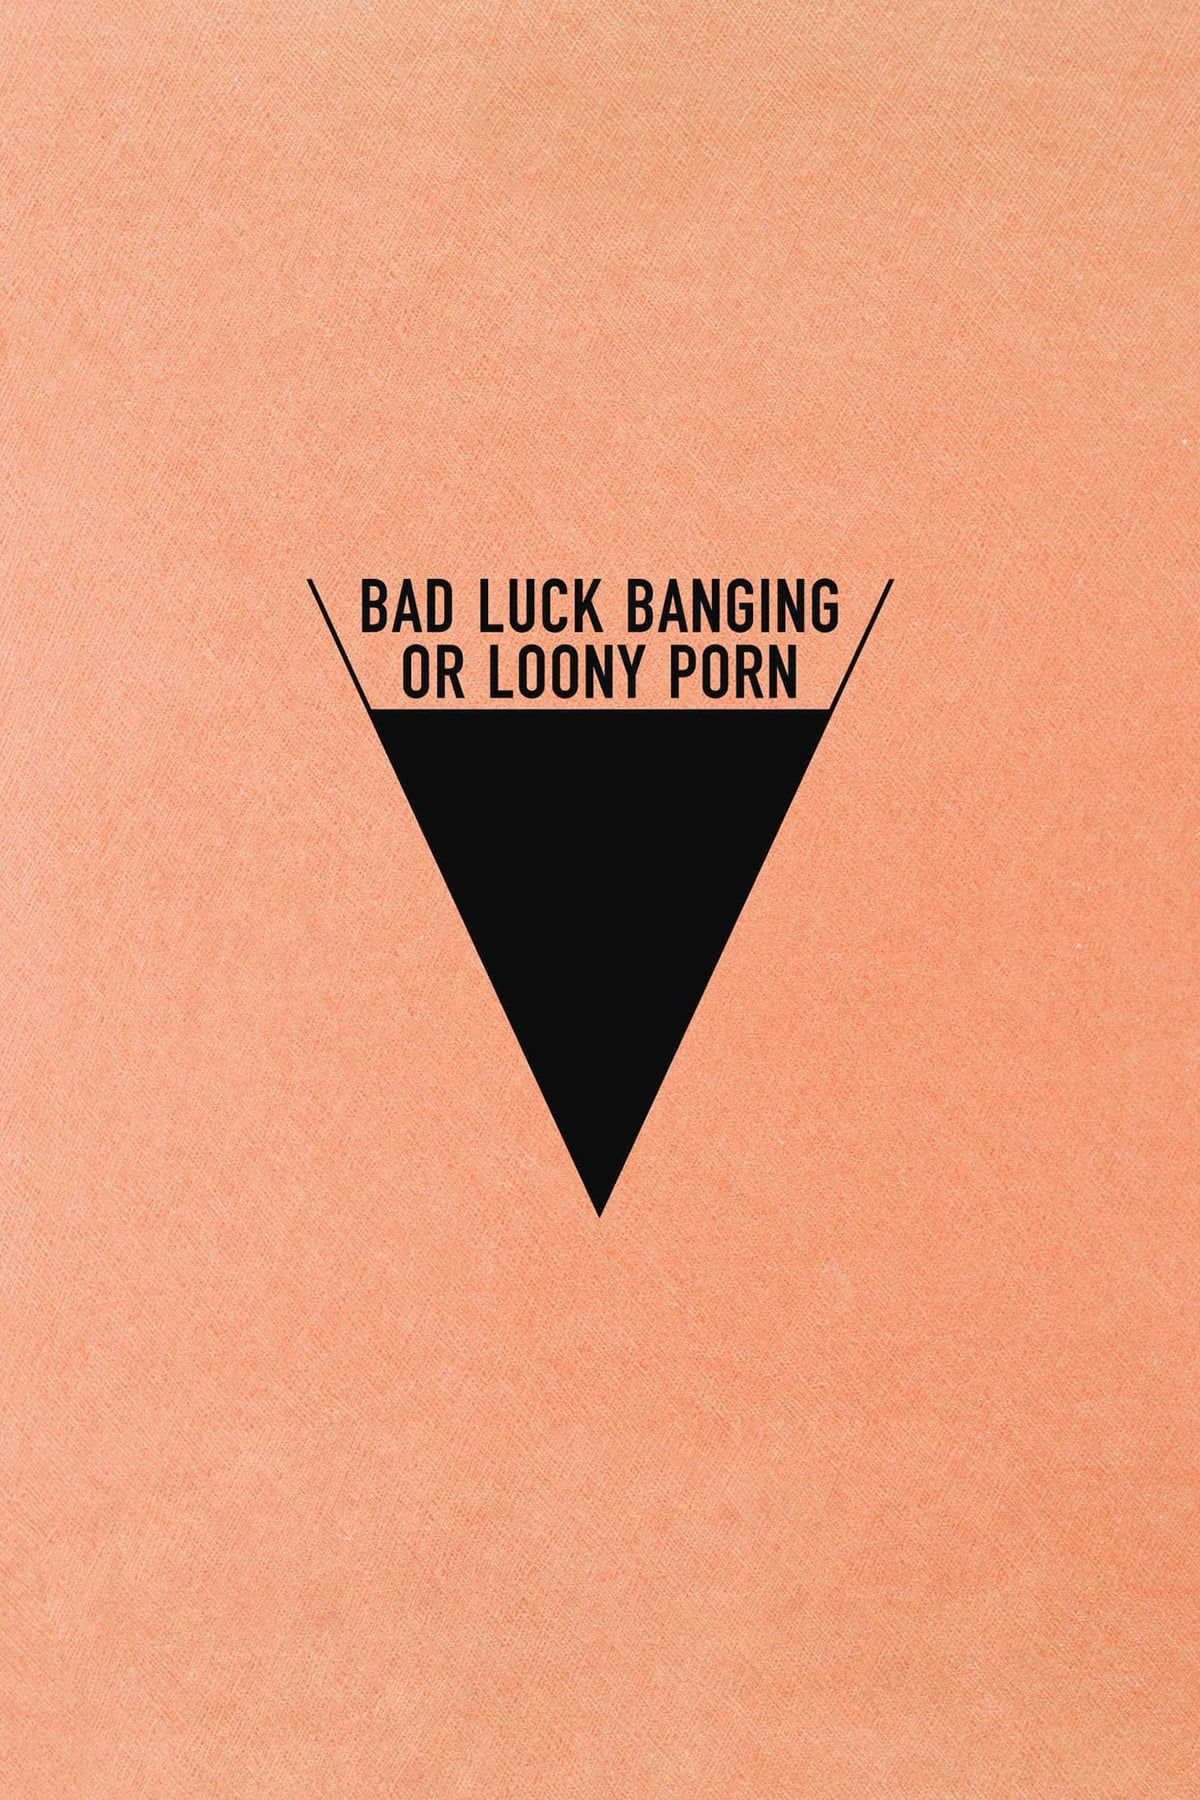 Bad Luck Banging or Loony Porn Poster